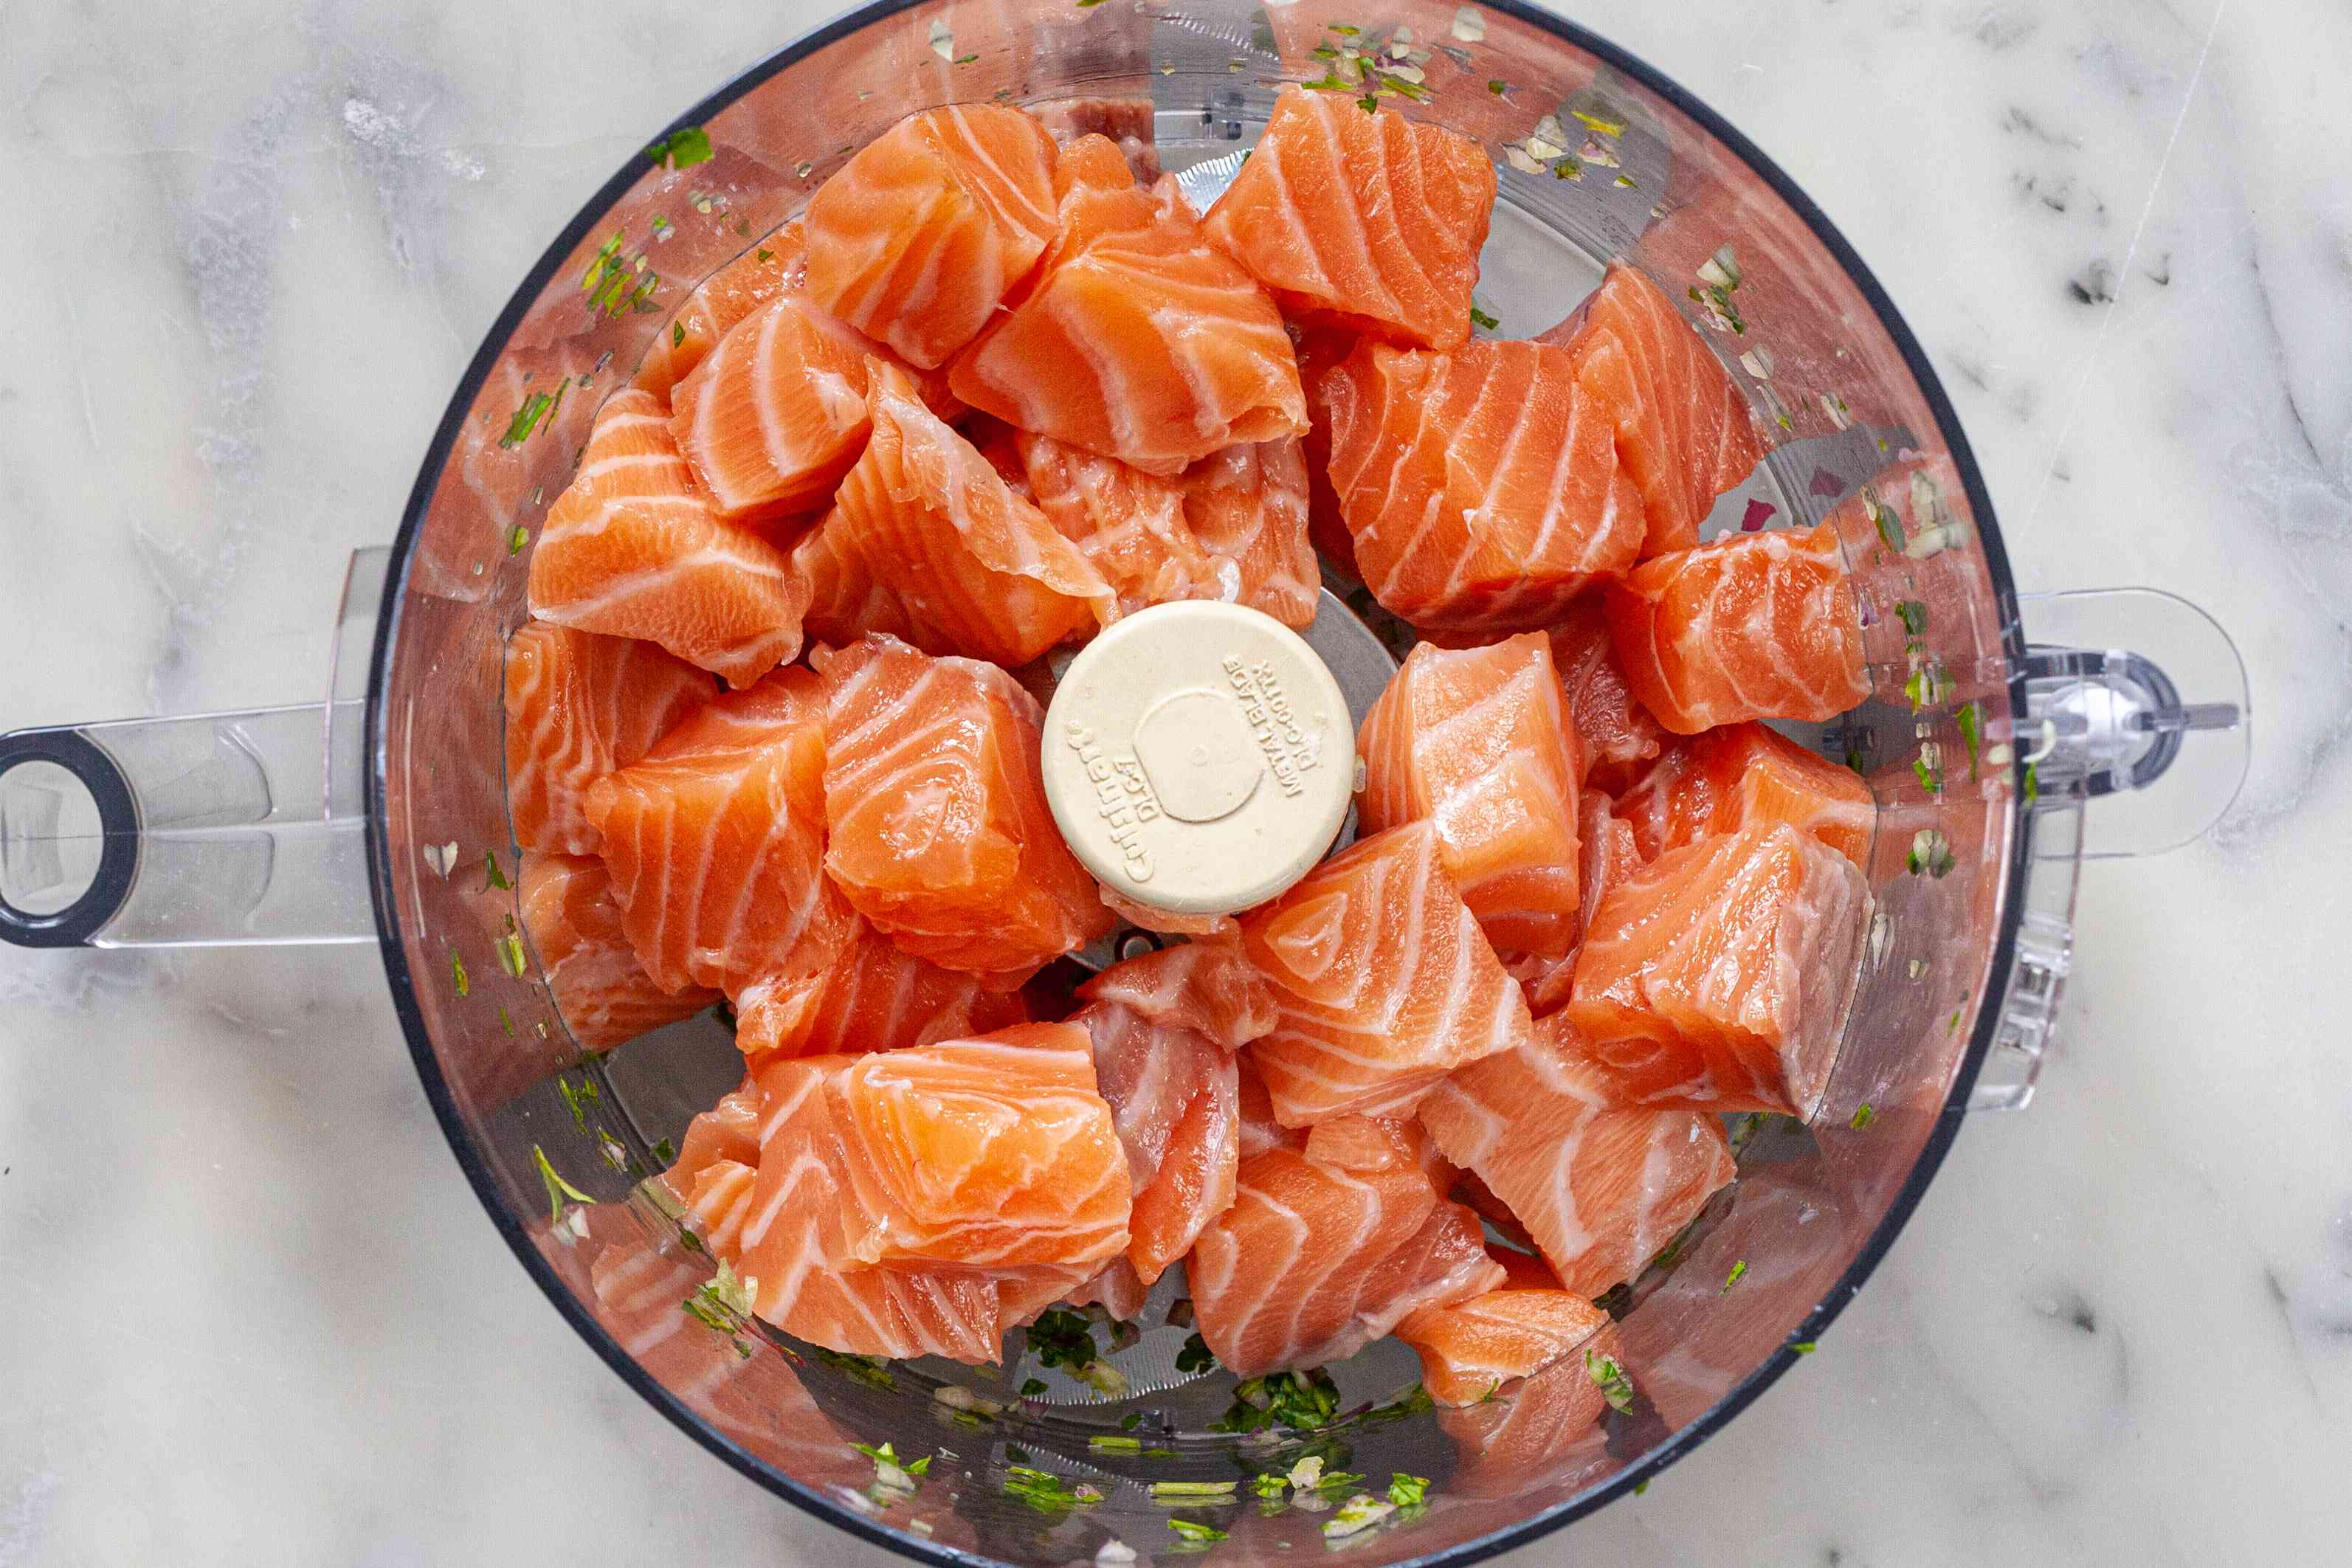 Cubed raw salmon in a food processor to make salmon burgers.